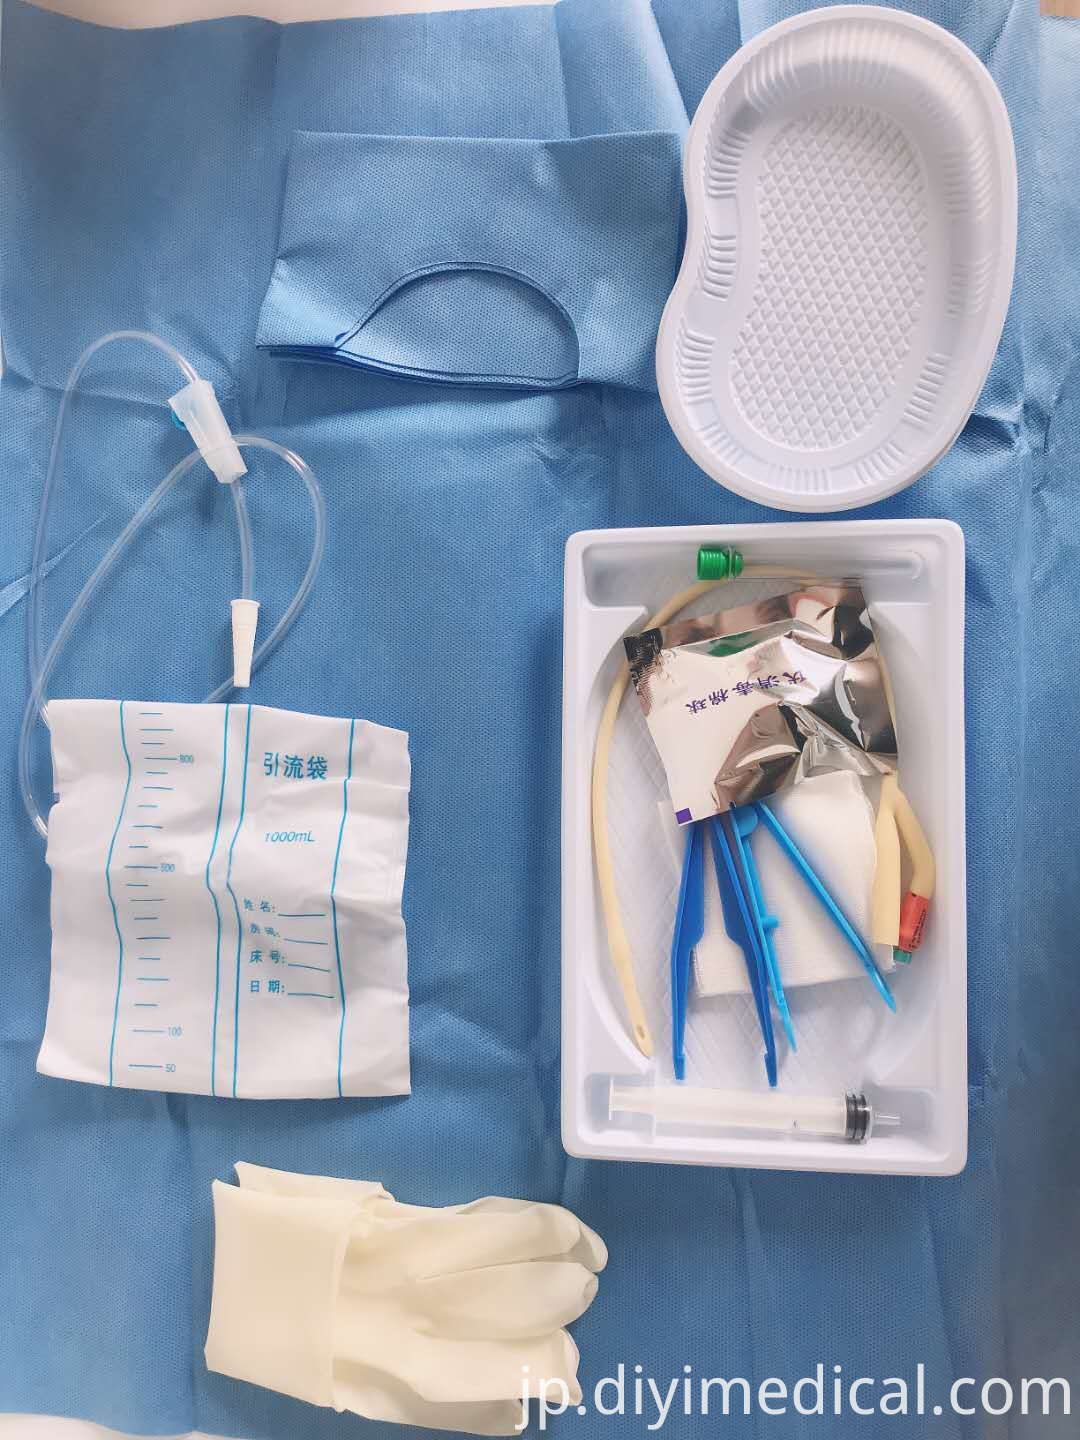 Drainage Catheter Urine Bag